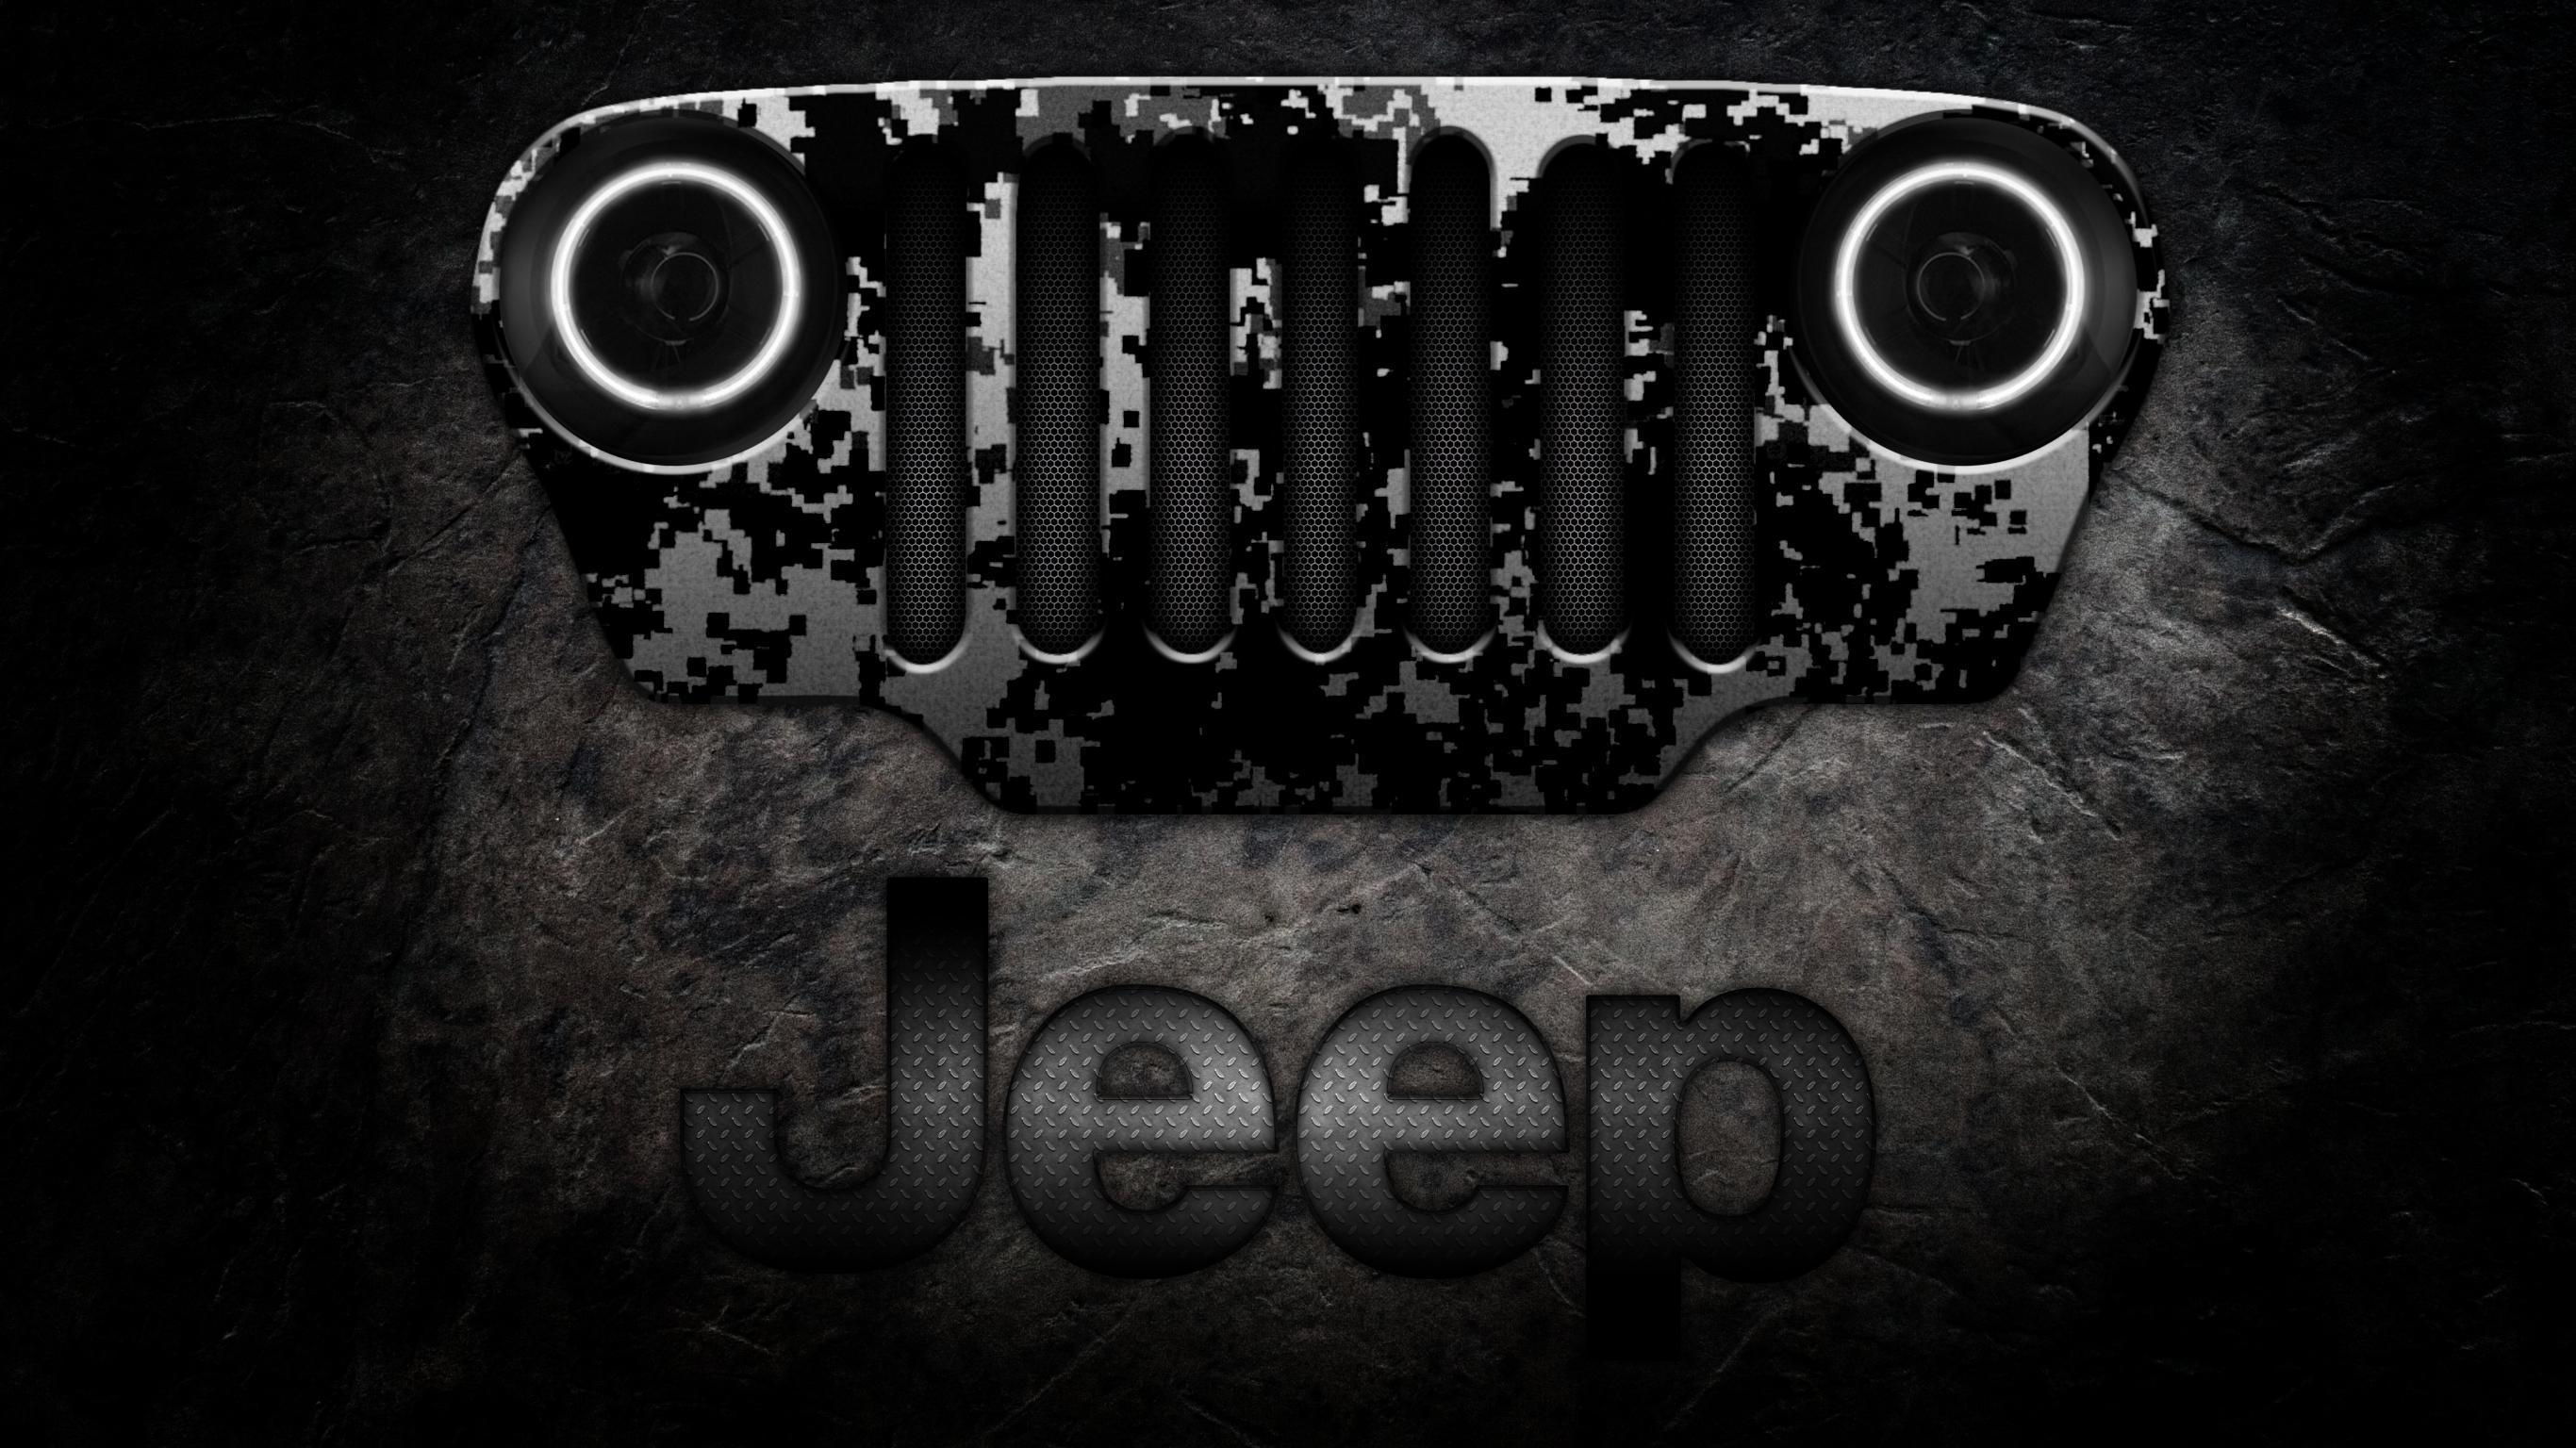 jeep iphone wallpaper viewing gallery